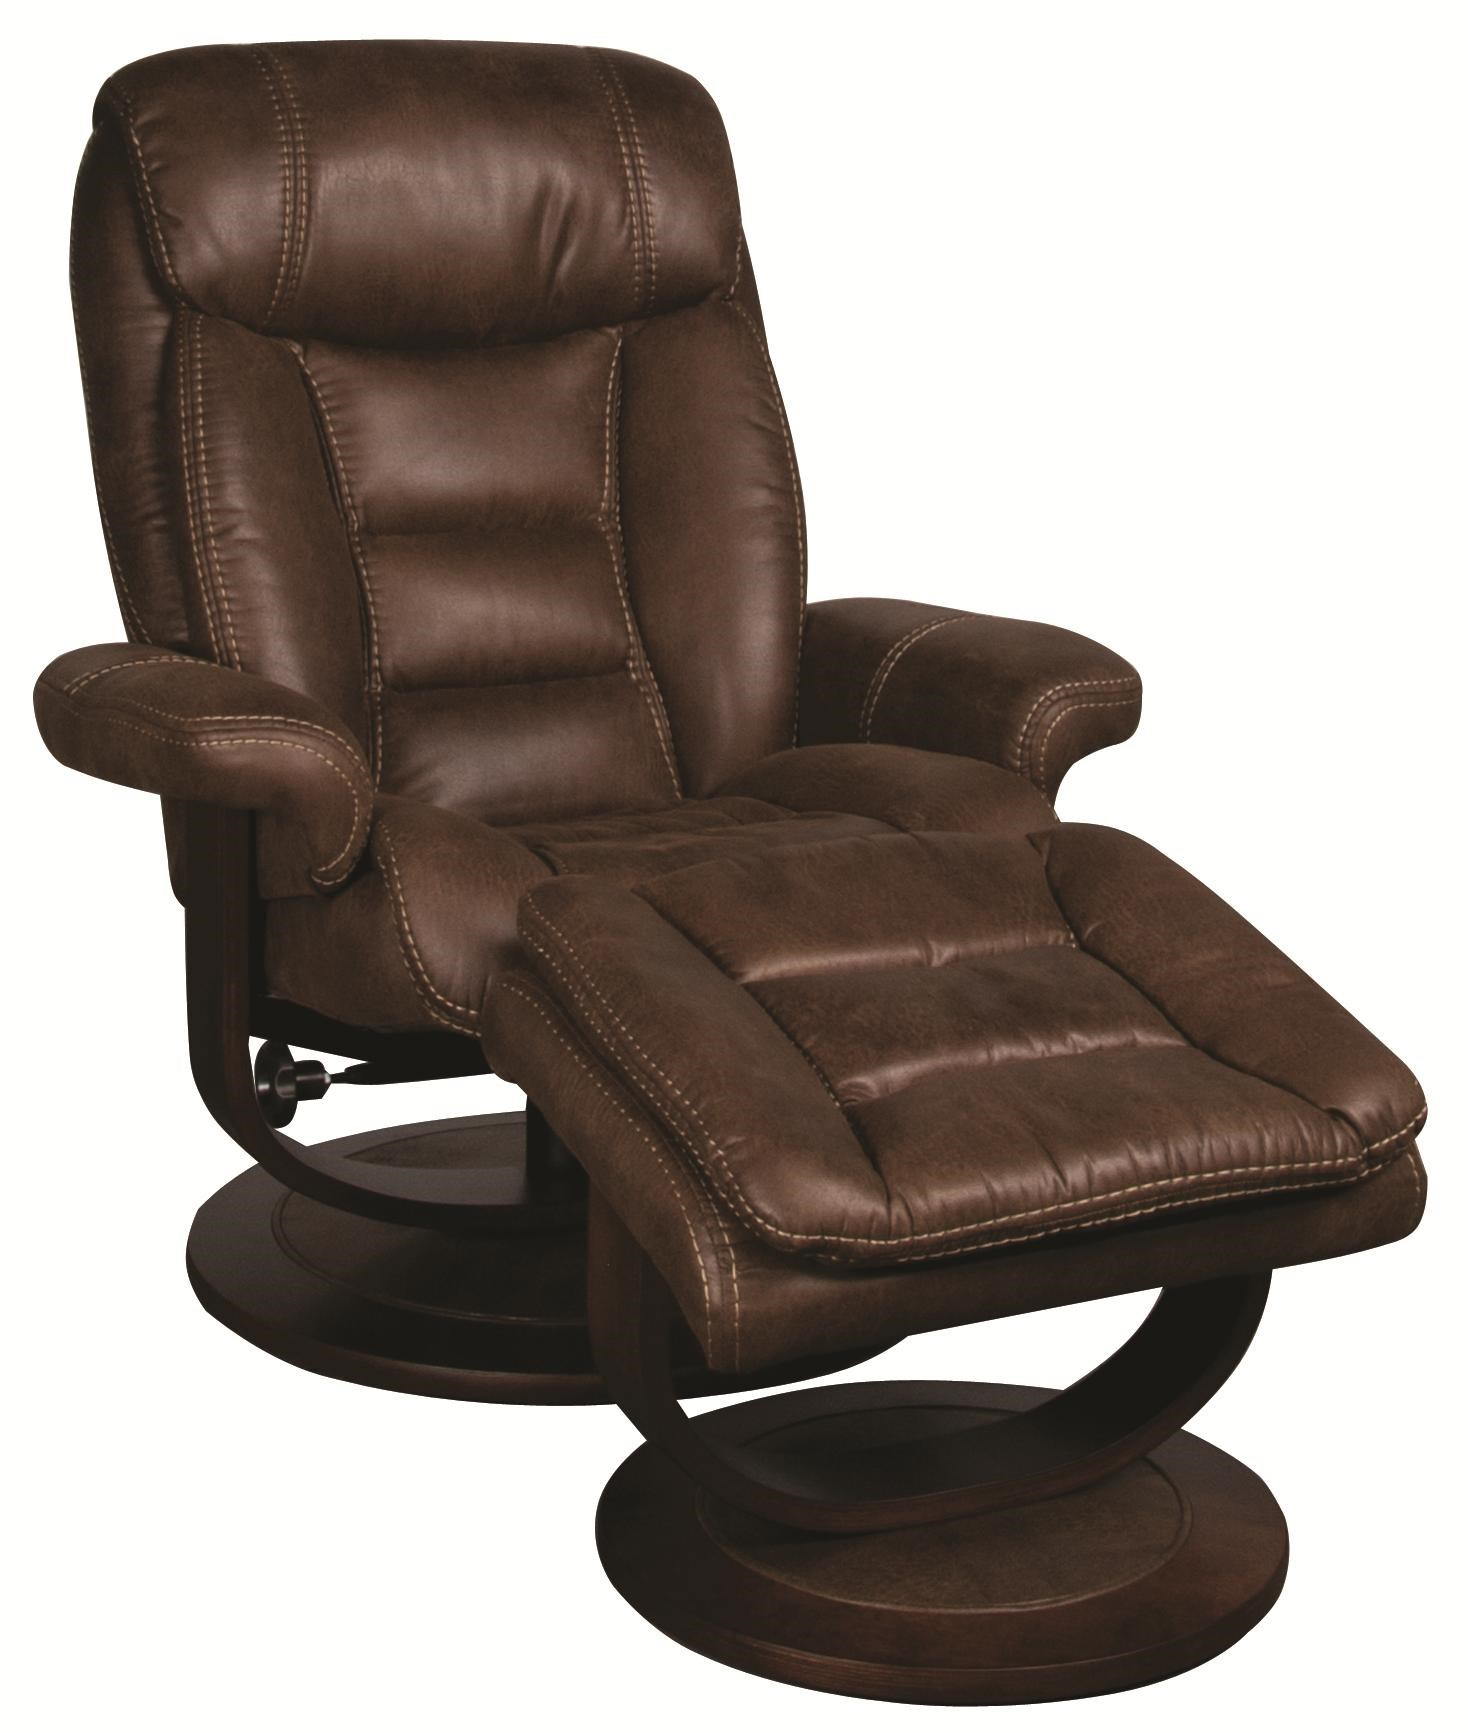 reclining chair with ottoman leather linen covers for sale manuel swivel recliner morris home